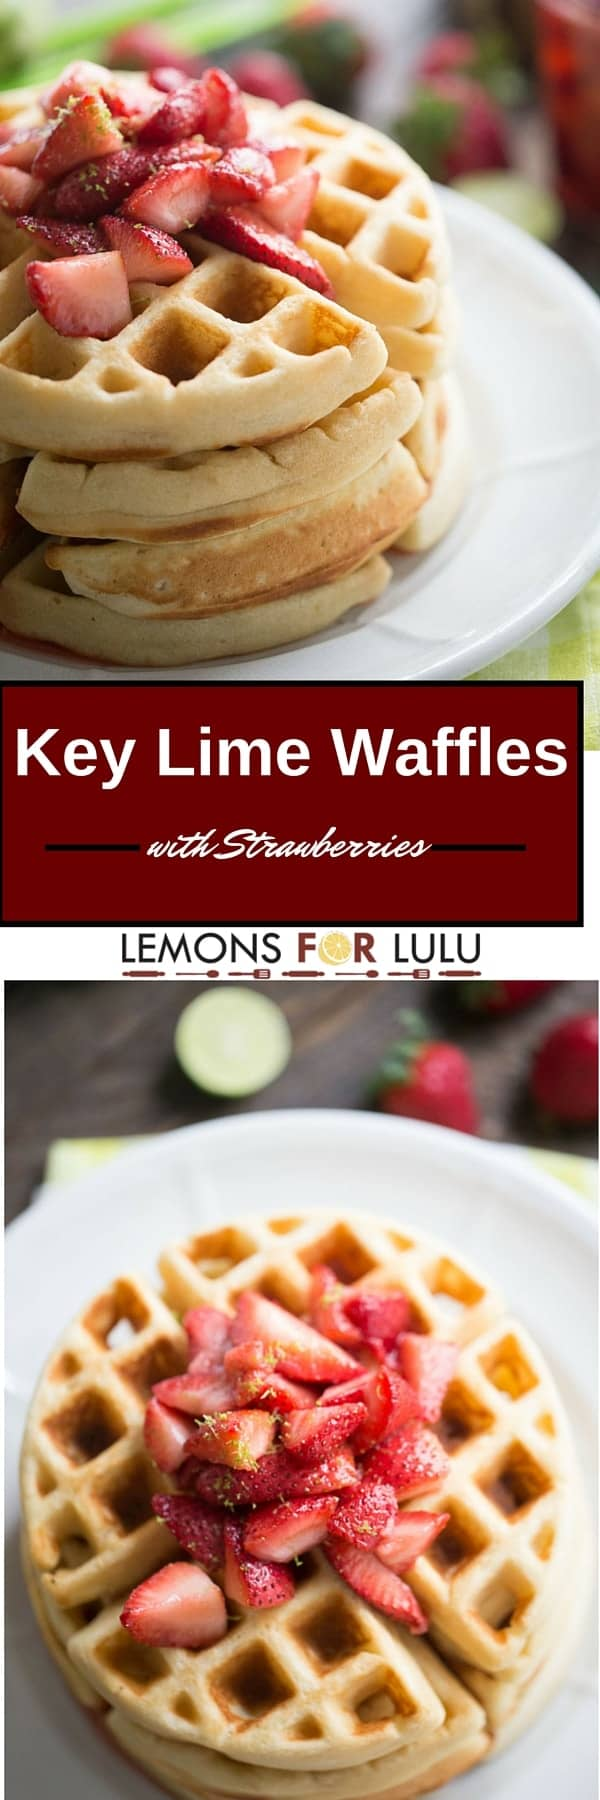 Nothing beats fluffy waffle for breakfast! This homemade waffles recipe has tangy key lime flavor on the inside and sweet, fresh strawberries on the top! An easy recipe for special occasions or lazy weekends!